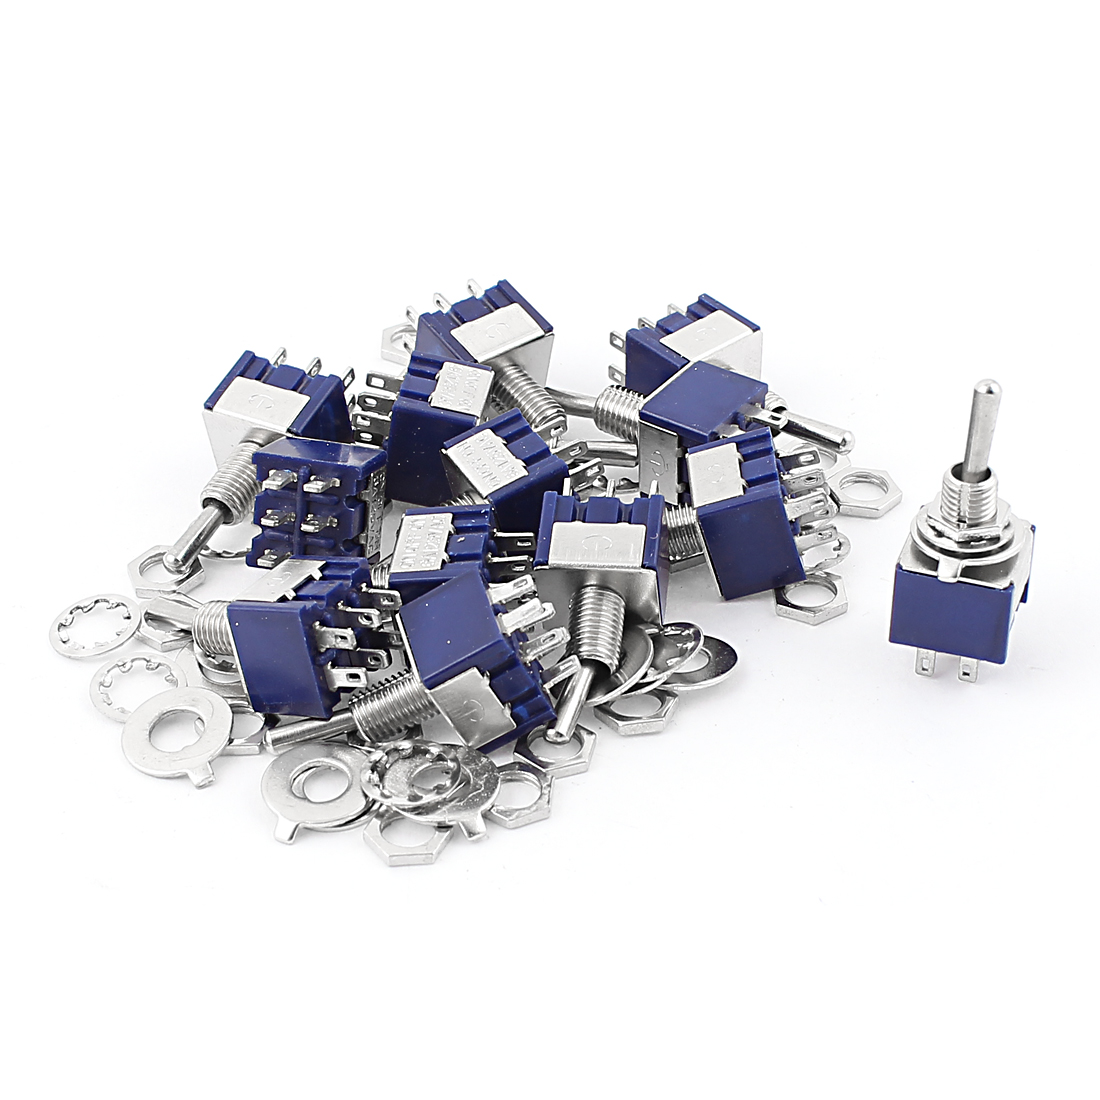 10Pcs AC 125V 6A 6 Pin Terminals ON-OFF-ON 6mm Thread Panel Mount DPDT Self-Locking Mini Toggle Switch Blue